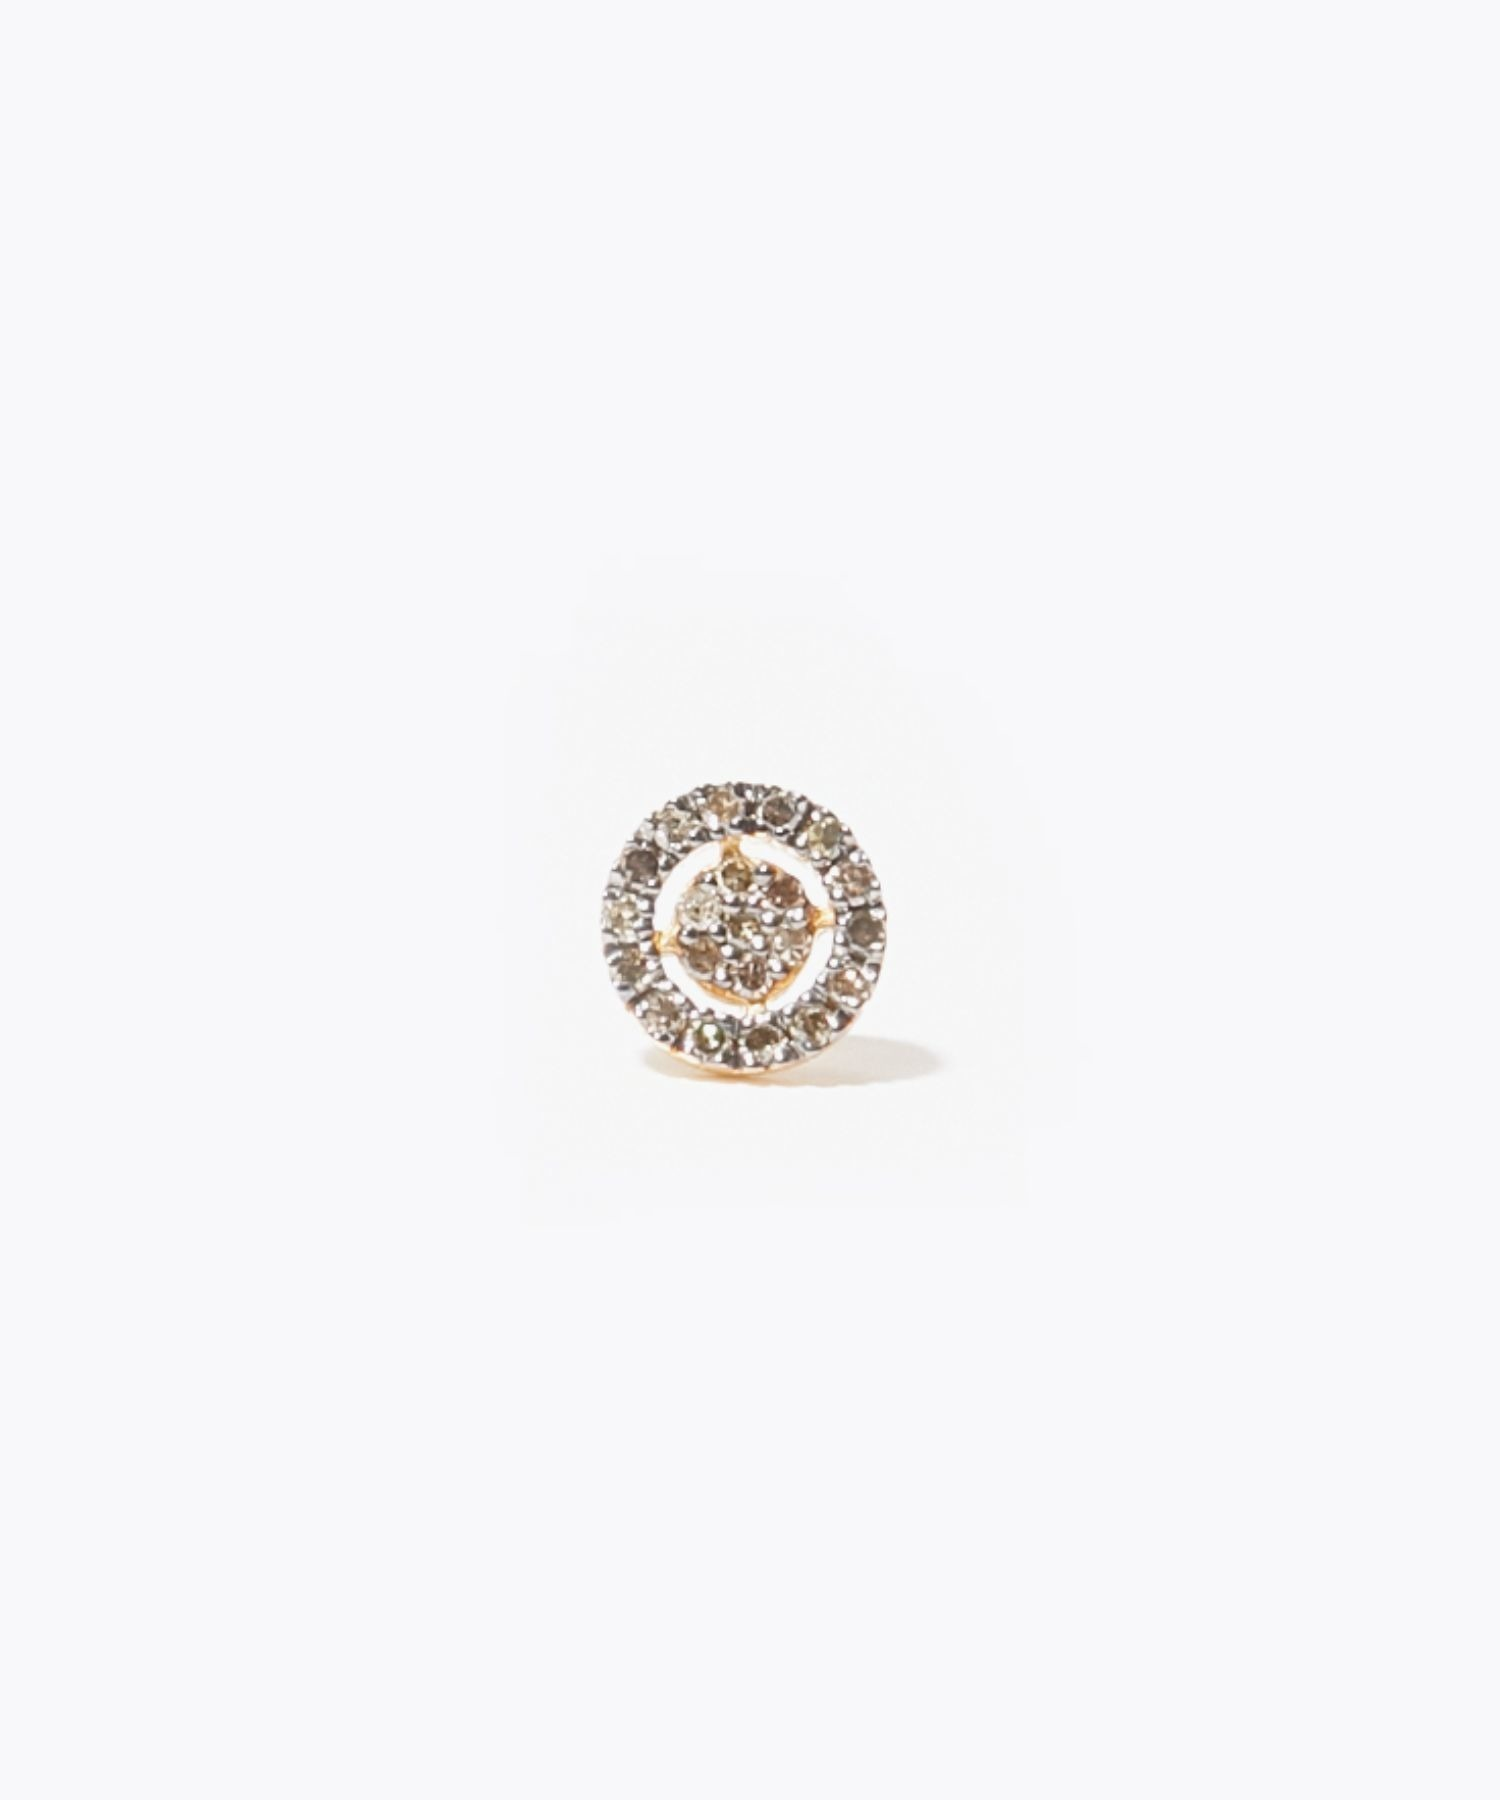 [jupiter] disque pave diamondss stud pierced earring